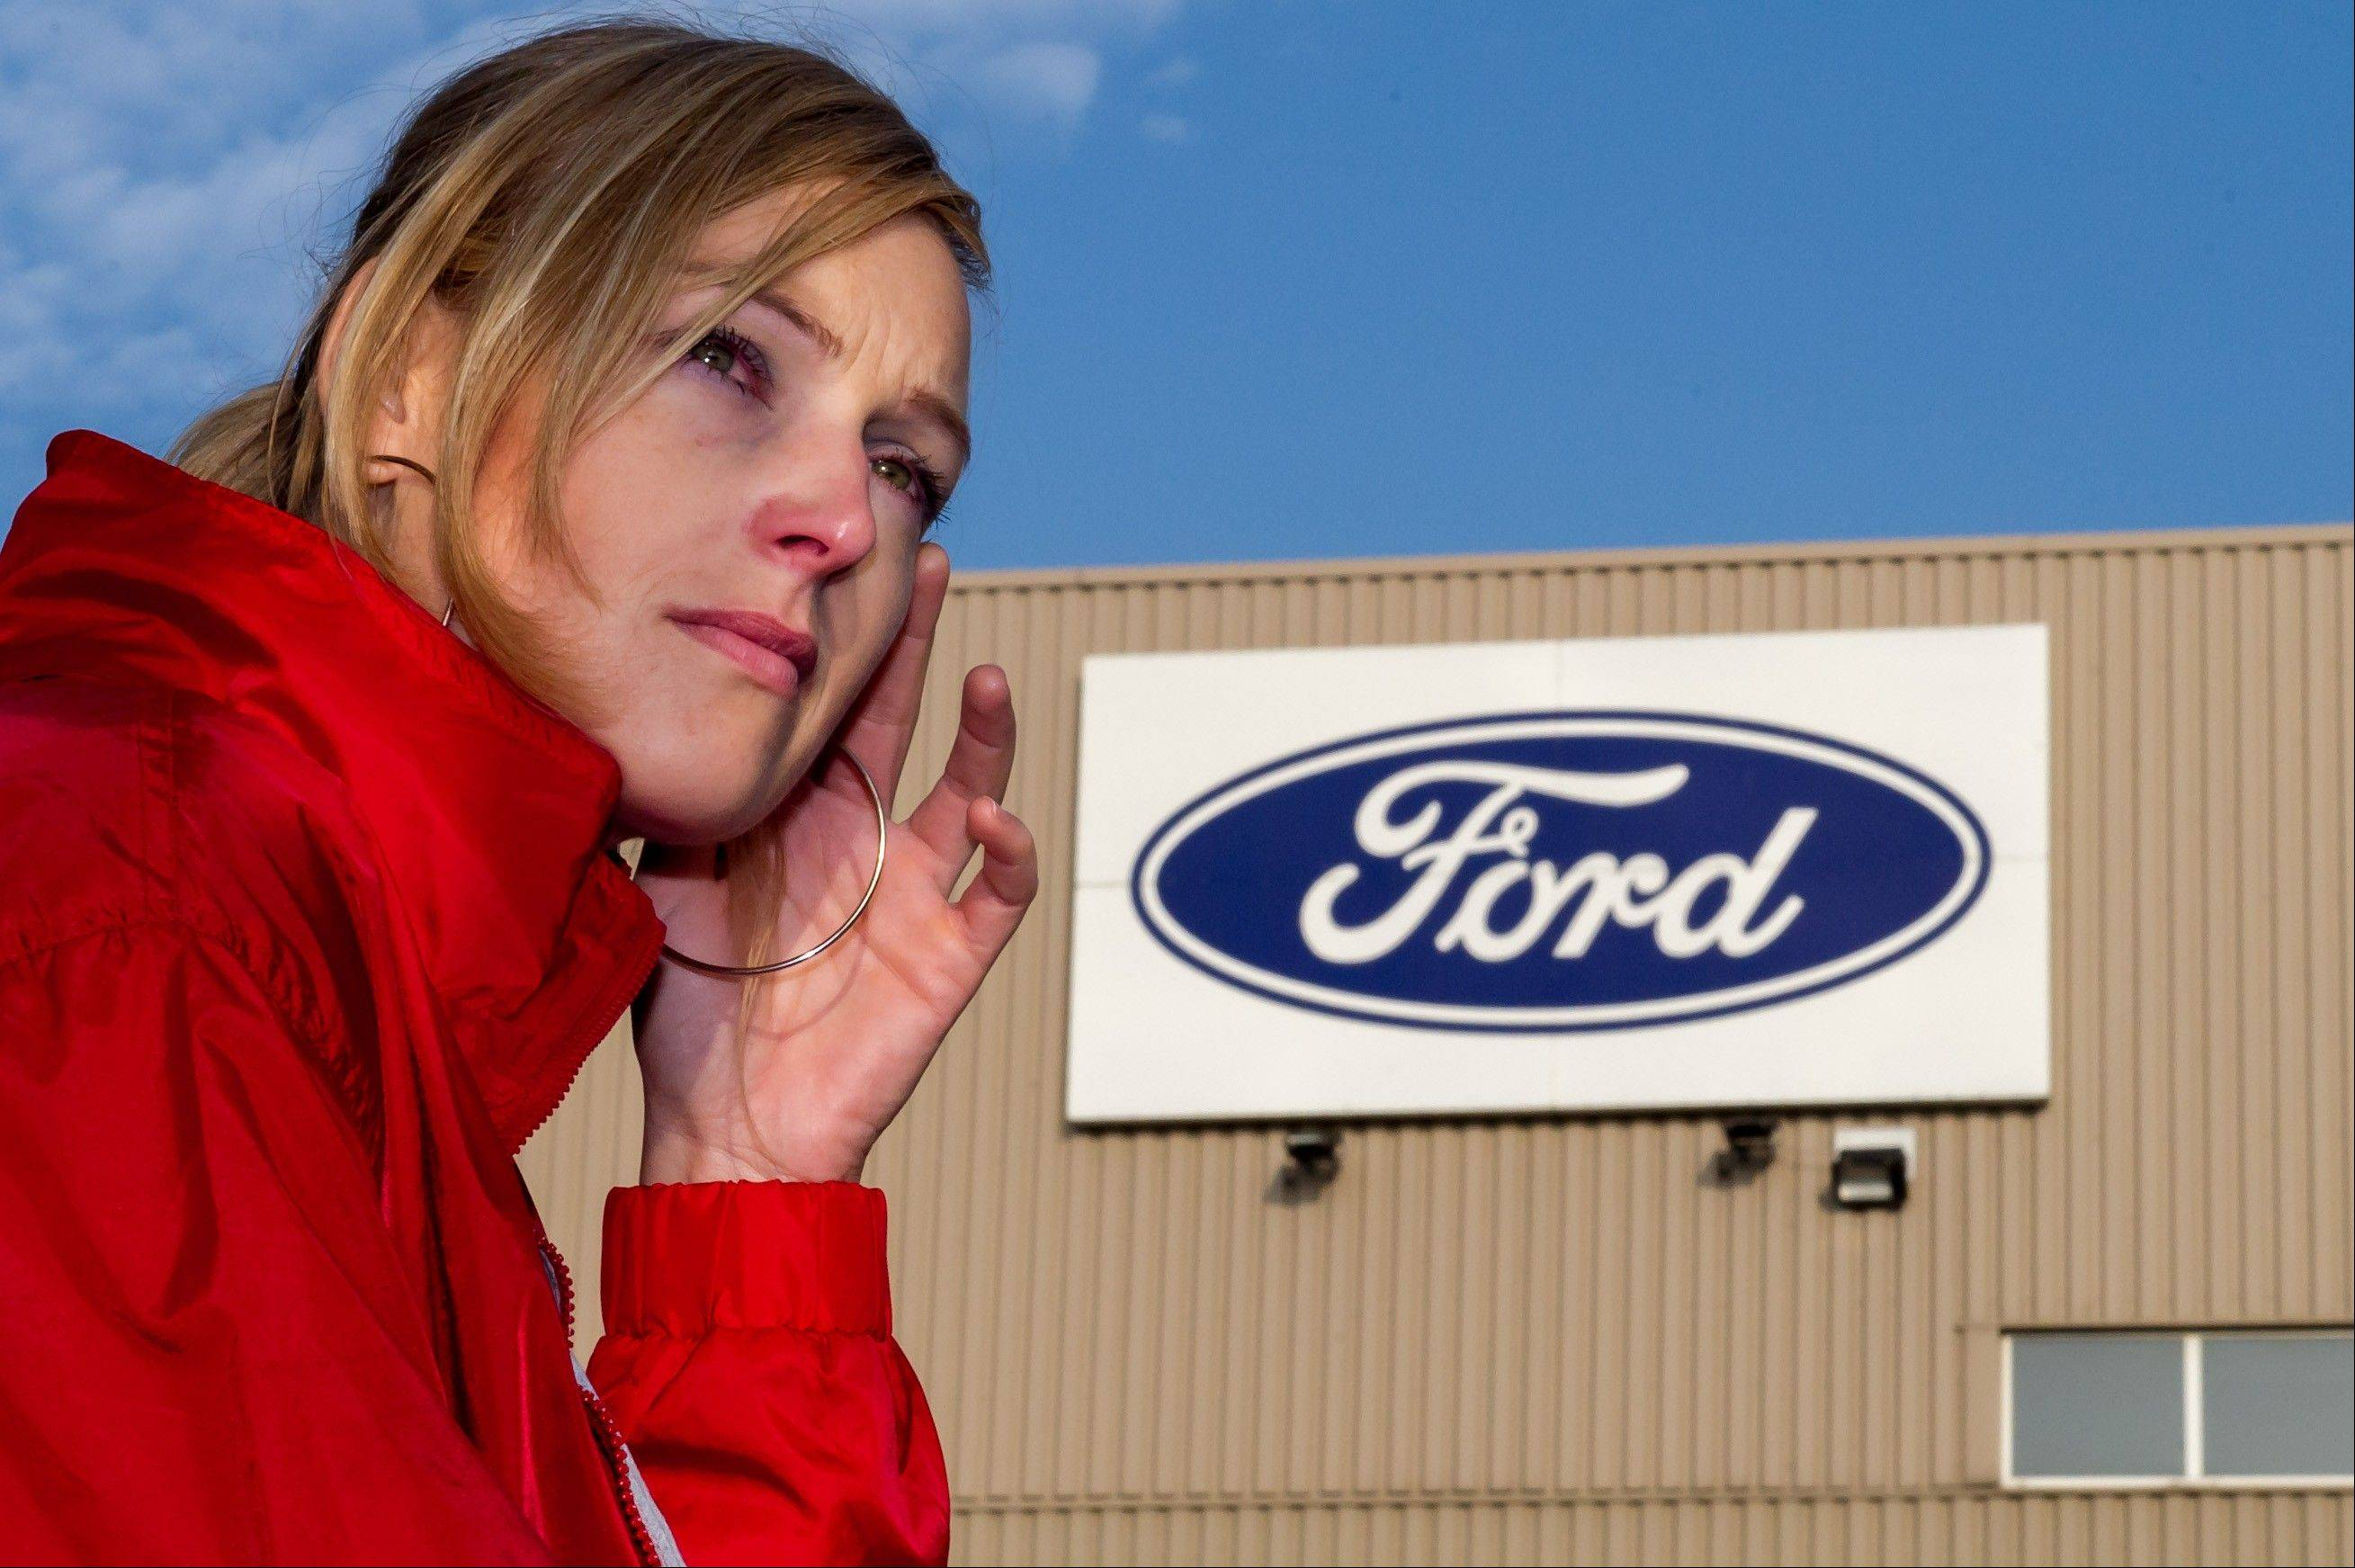 A Ford worker reacts after the European Ford management announced it would close the Ford plant in Genk, Belgium on Wednesday Oct. 24, 2012. A union leader says Ford has decided to close its factory in Genk, Belgium, at the end of 2014 in a move that will result in 4,500 direct job losses and 5,000 more among subcontractors.